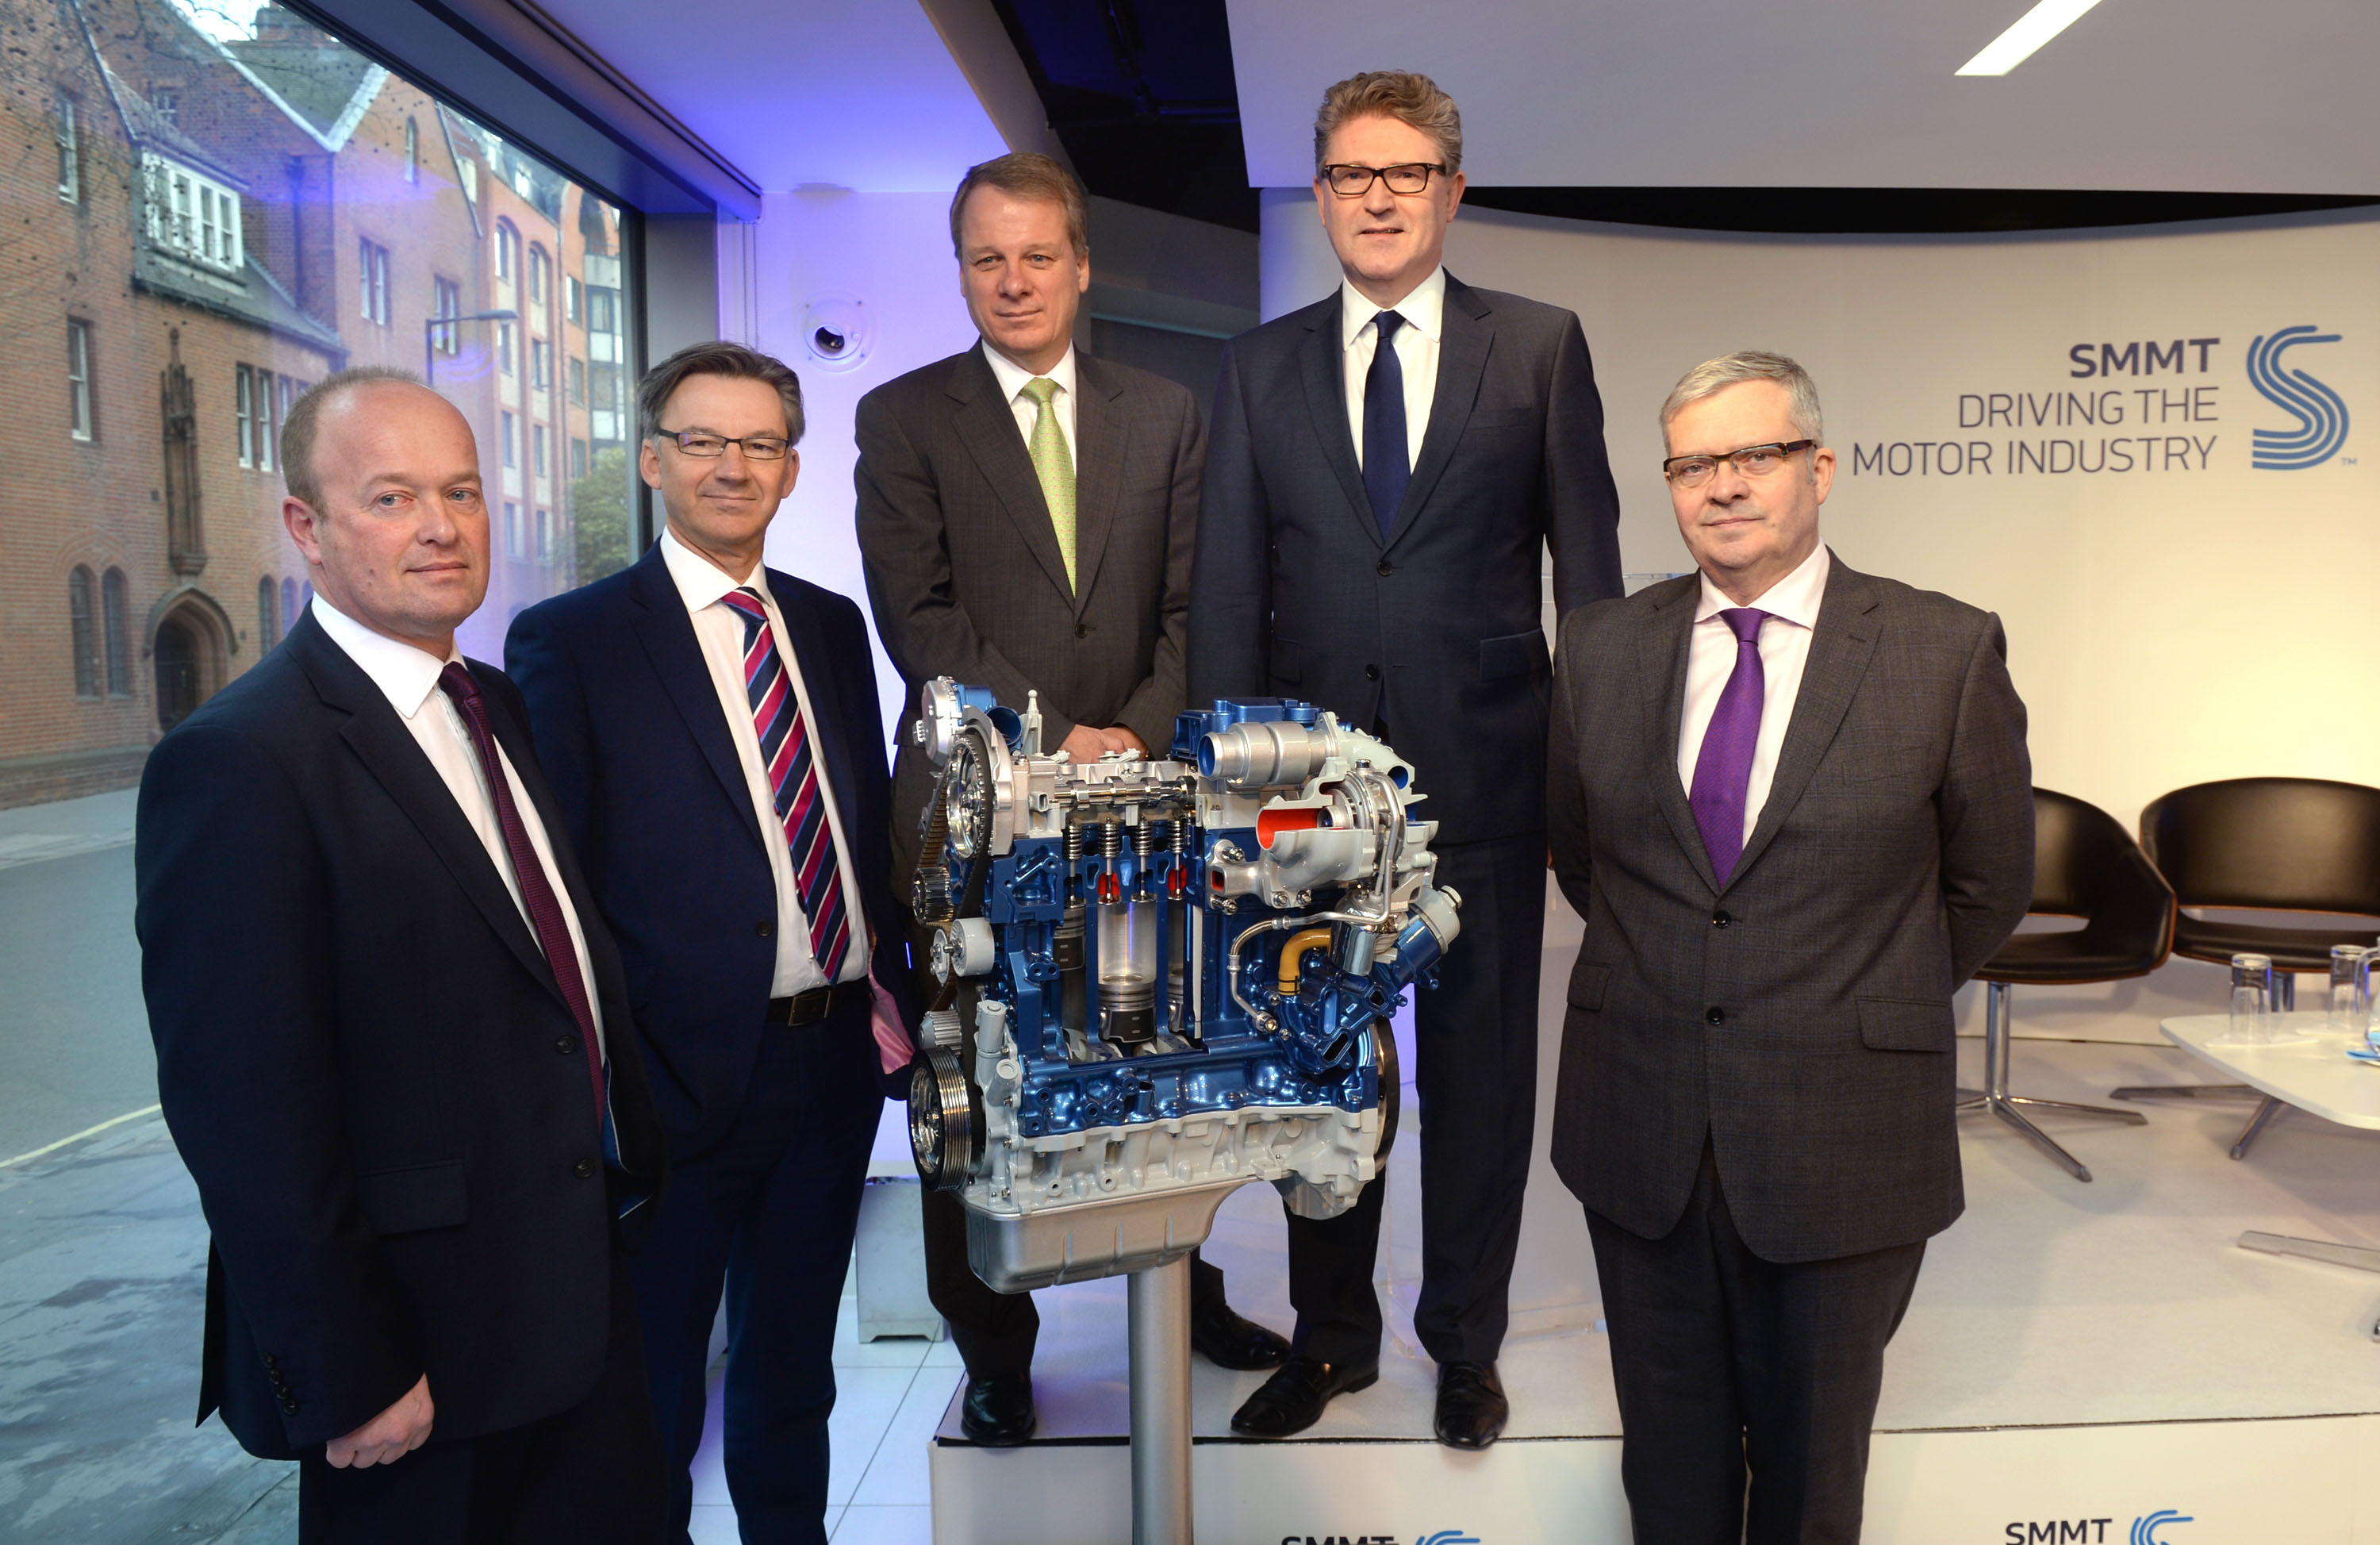 Mike Hawes and automotive industry managing directors